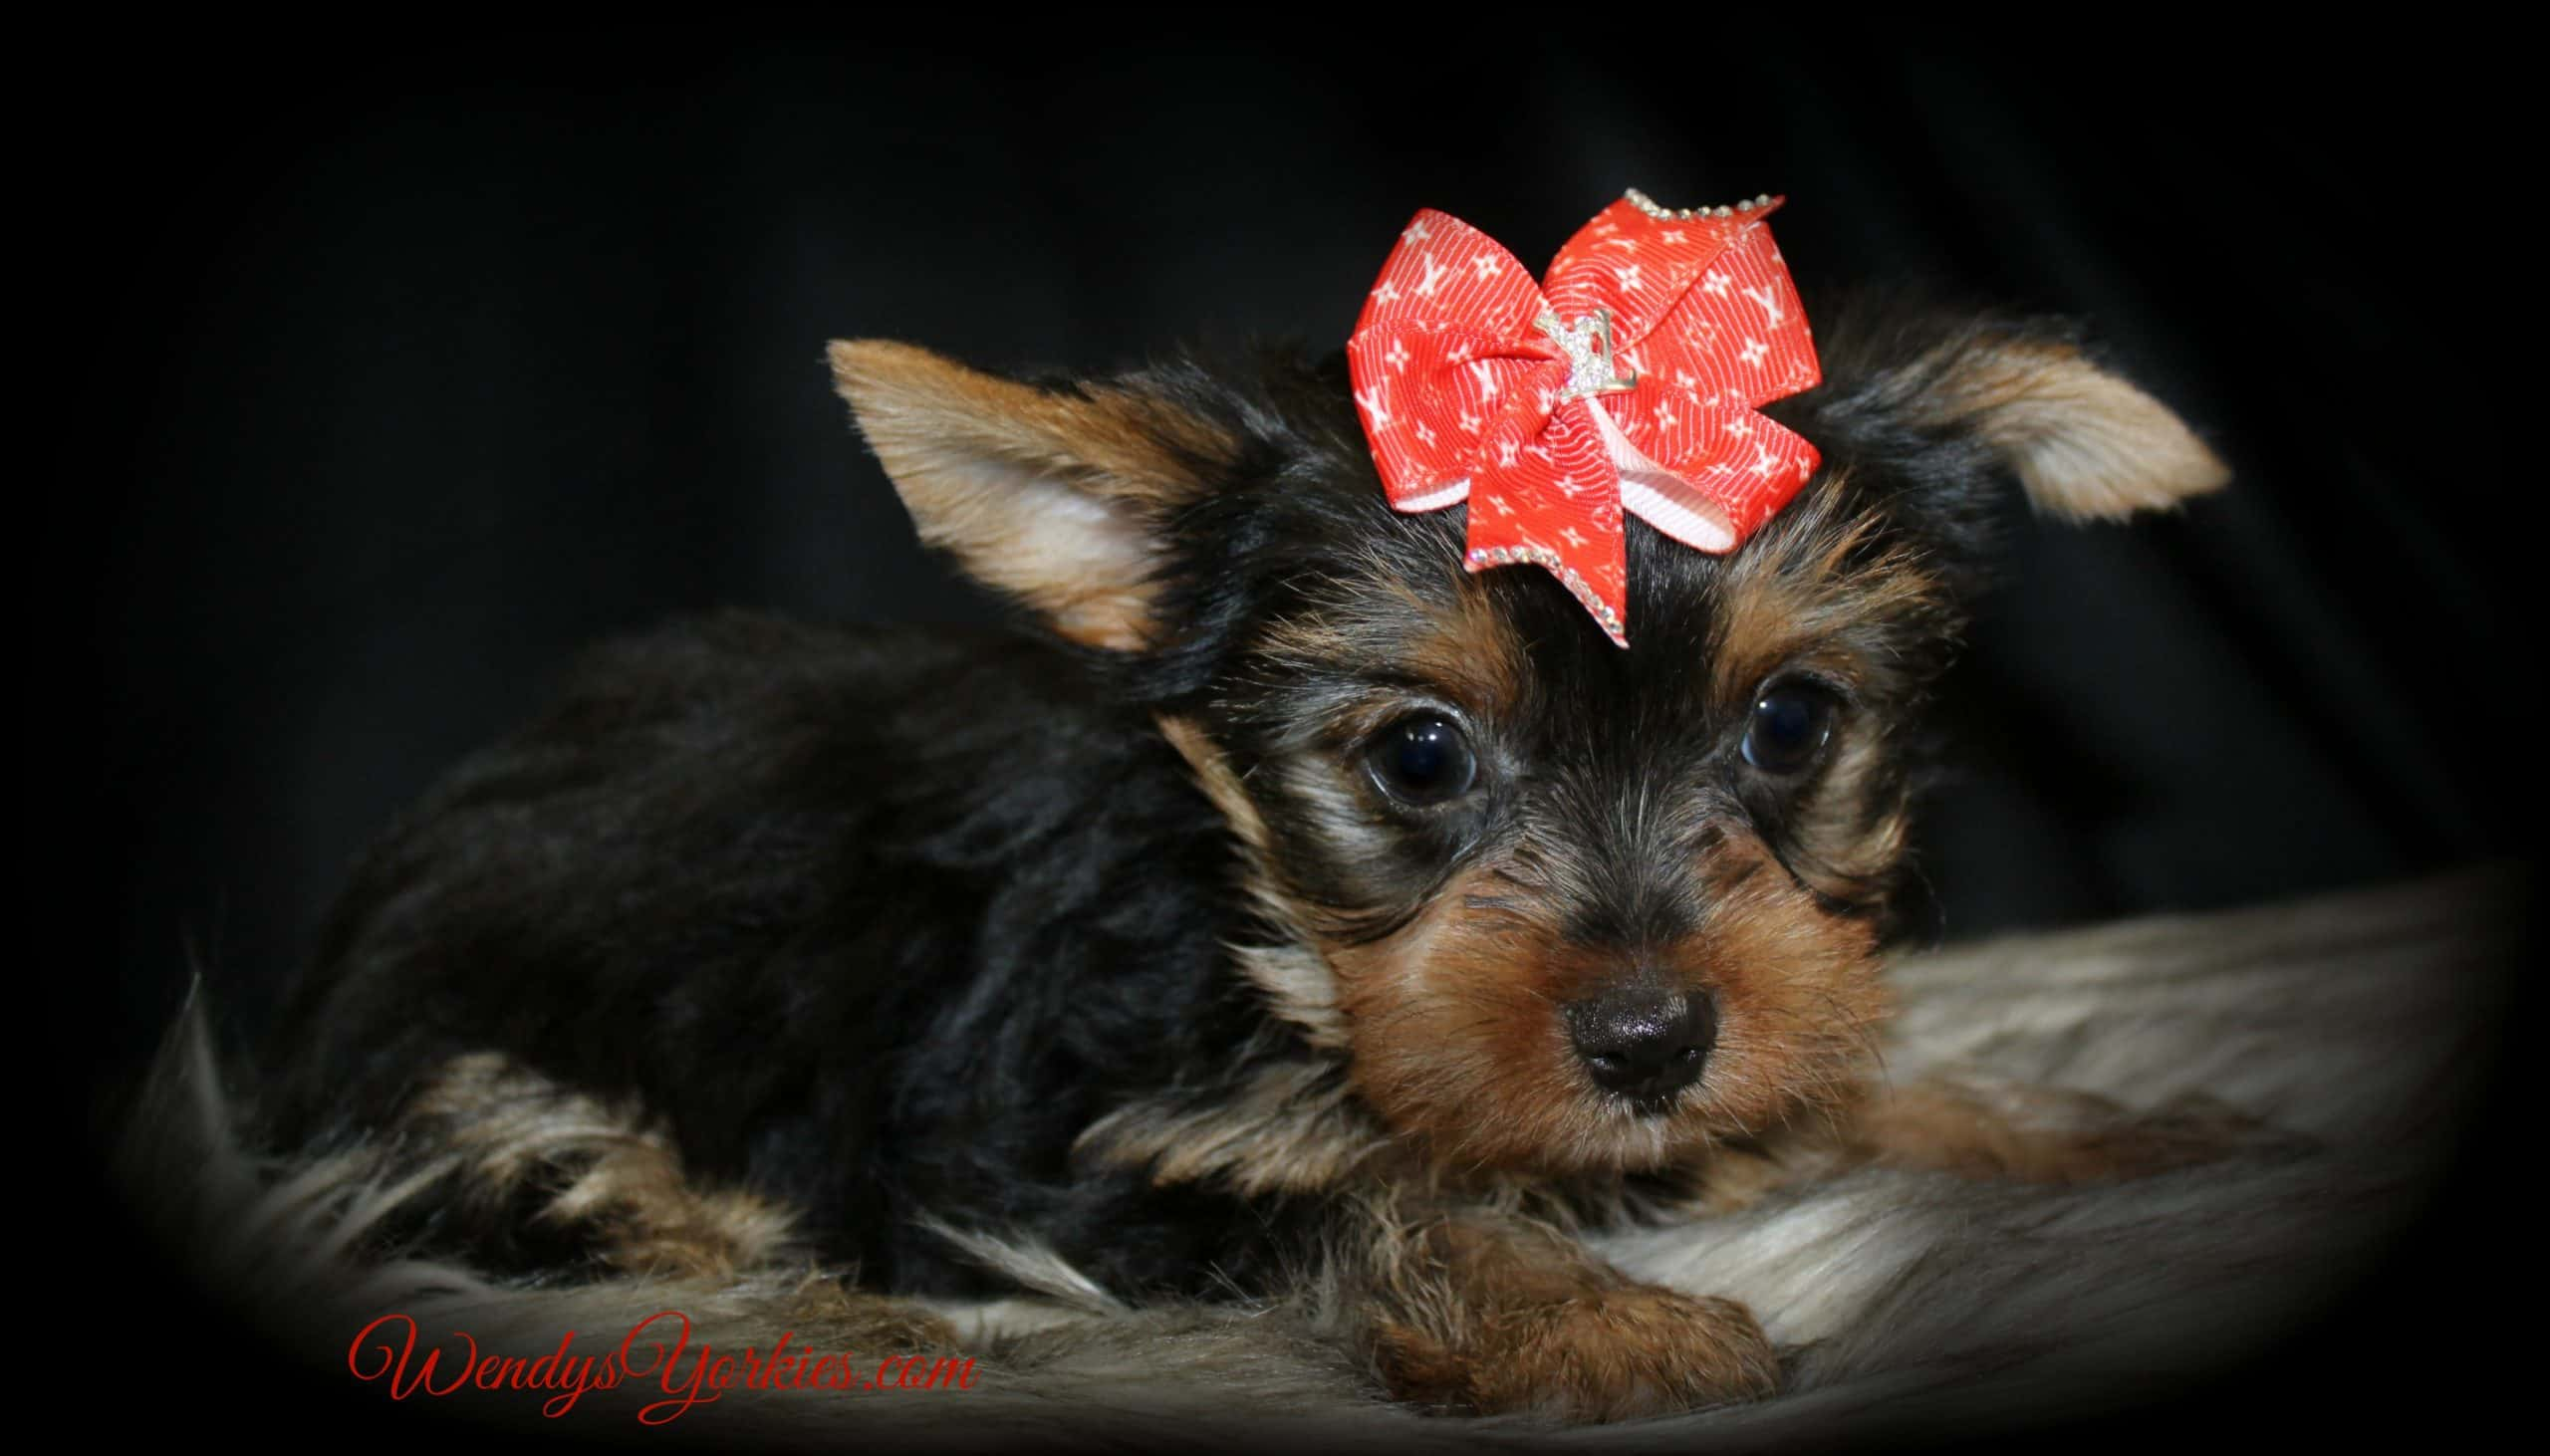 Yorkie puppies for sale , TG m1, WendysYorkies.com